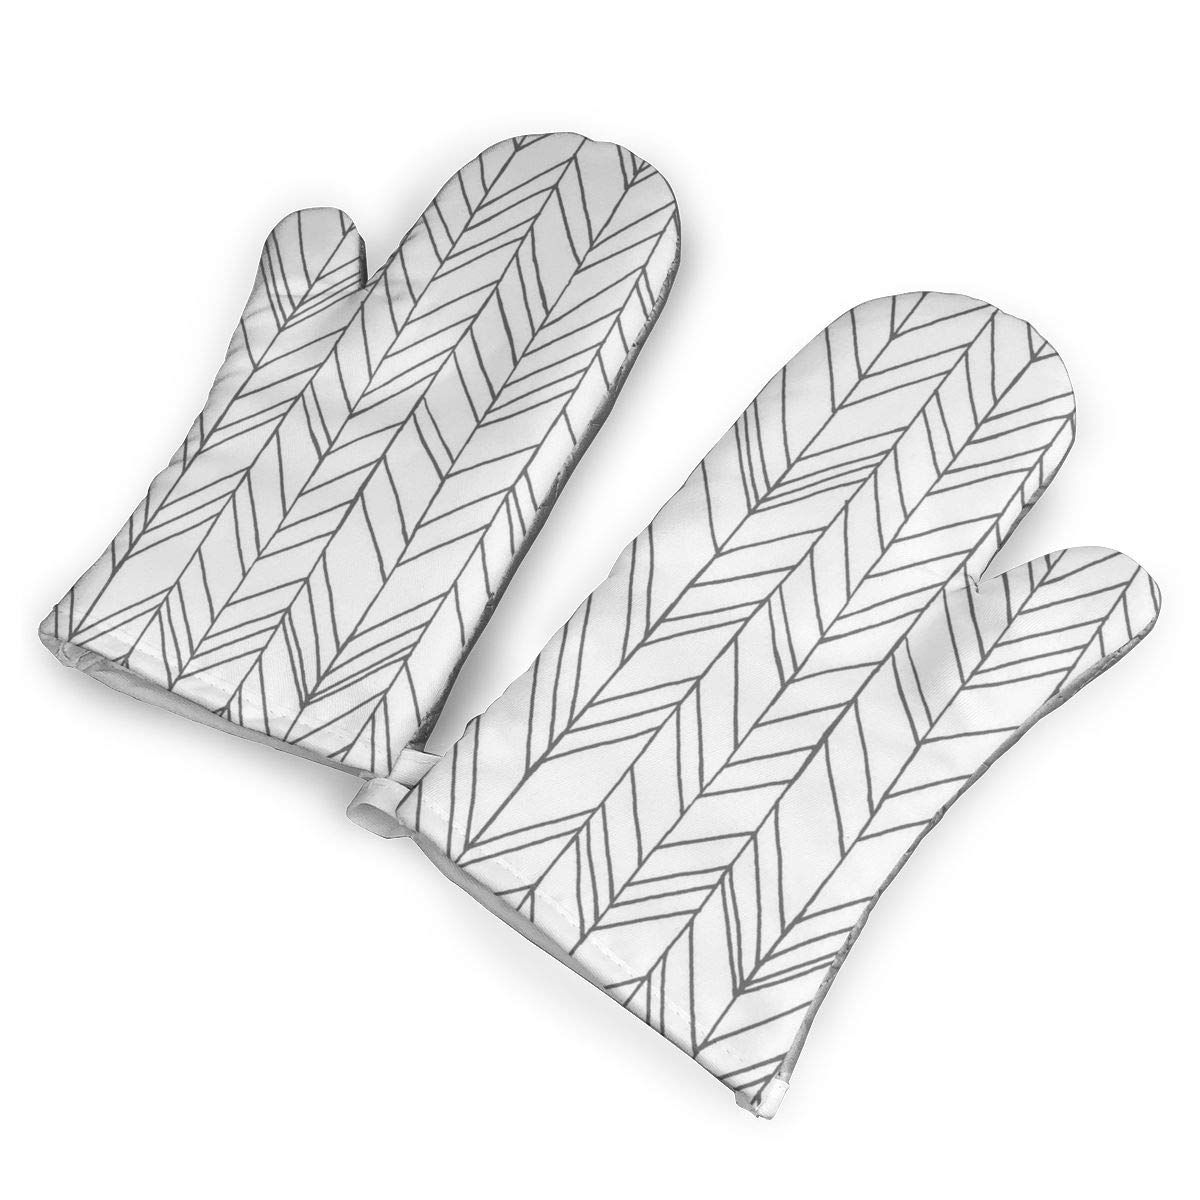 Victoria-Ai Chevron White Gray Oven Mitts Premium Heat Resistant Kitchen Gloves Non-Slip Easy to Use Baking Mittens for BBQ/Cooking/Grilling